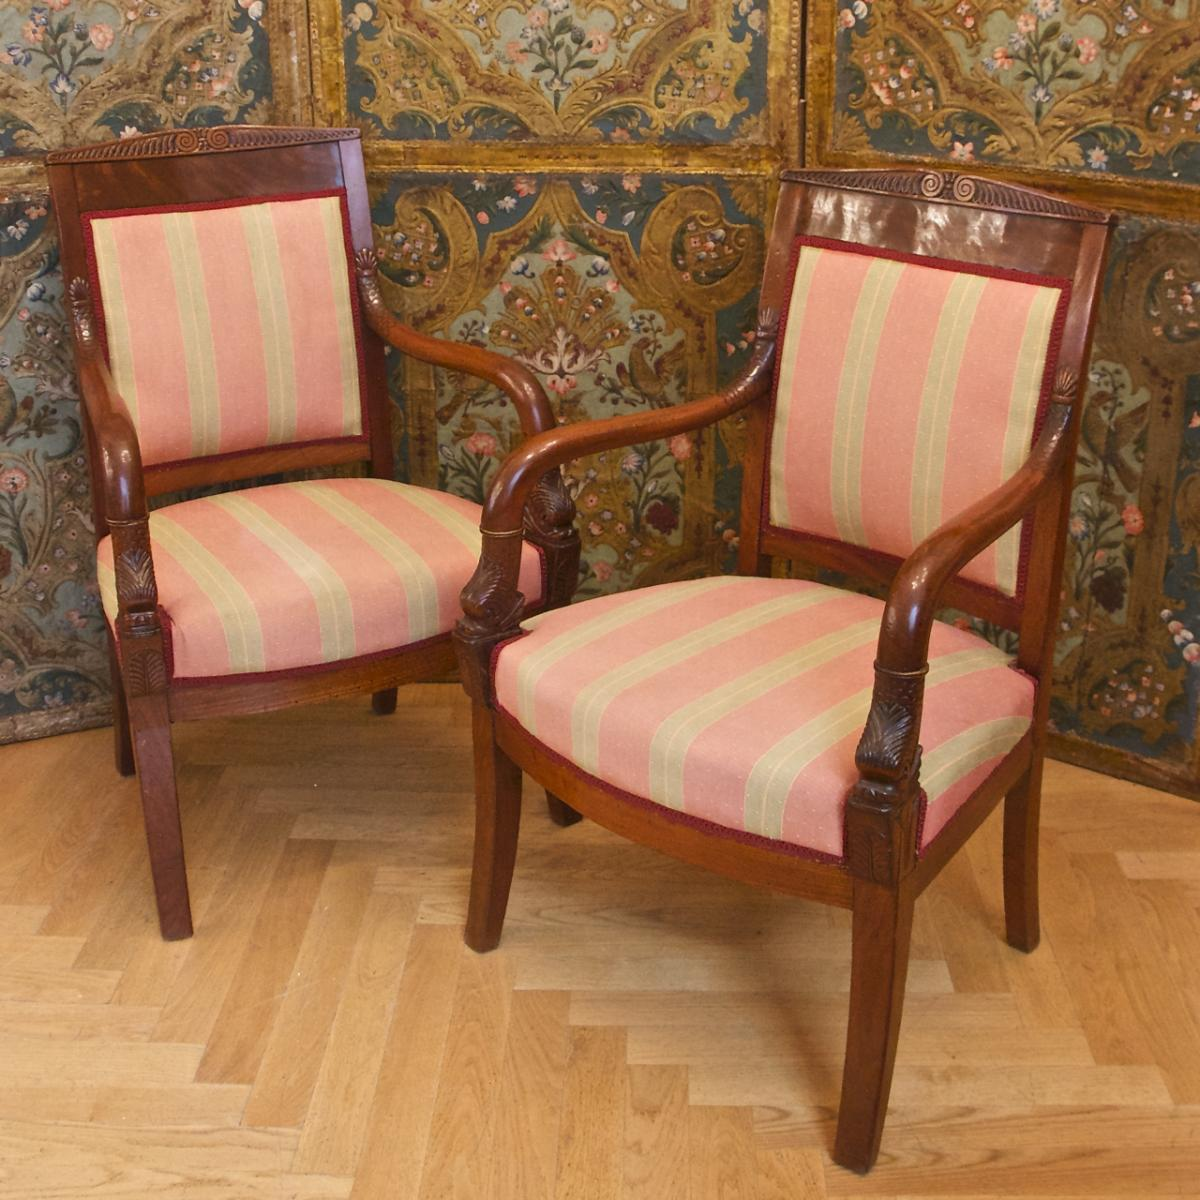 Pair Of Empire Period Mahogany Fauteuils Armchairs With Dolphins, Early 19th Ct.